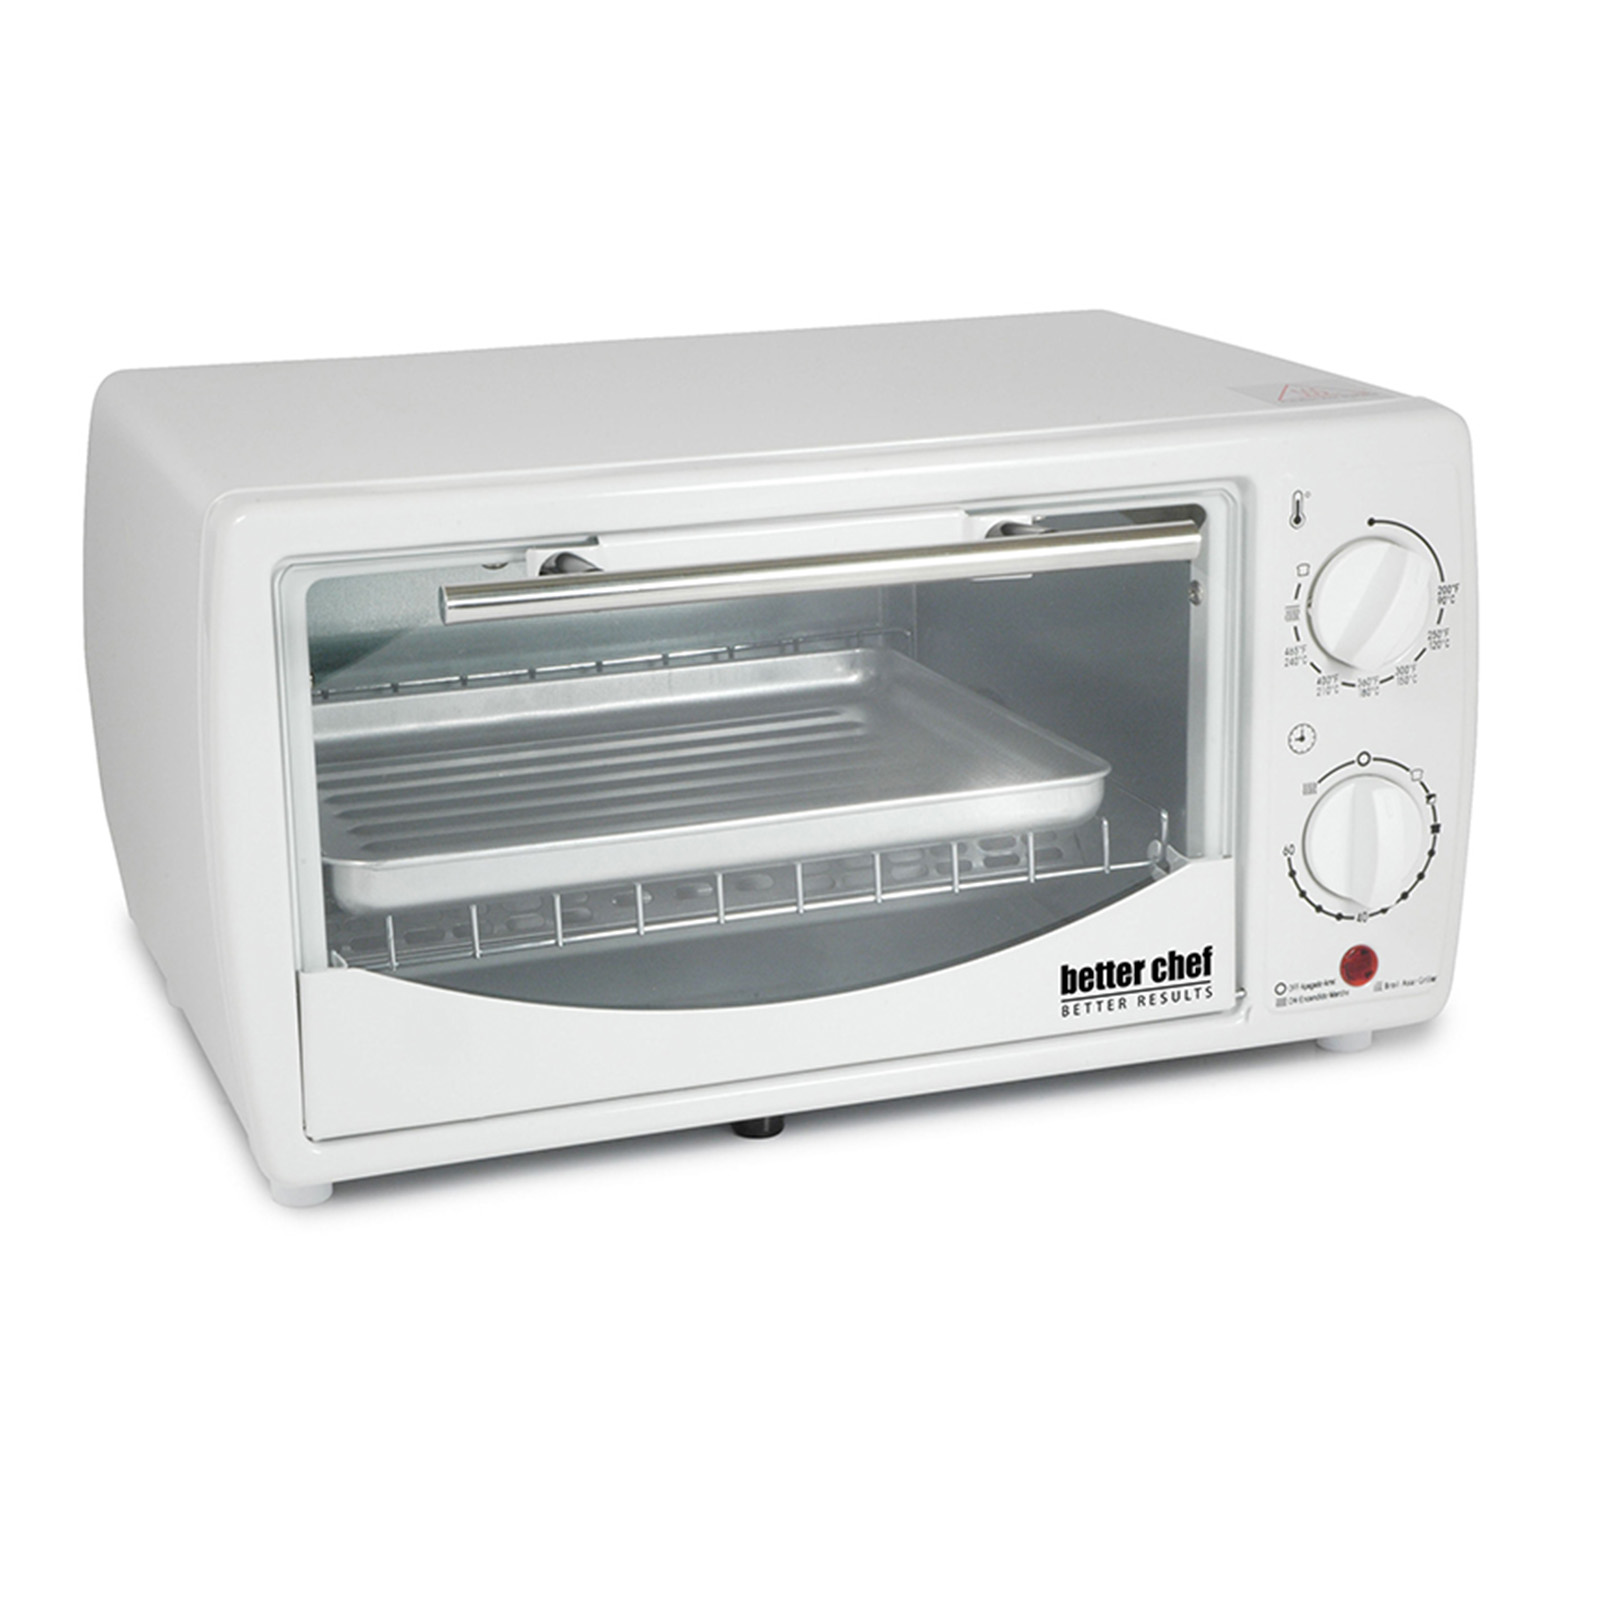 Image of Better Chef 97089570M 8-Liter Toaster Oven Broiler - White